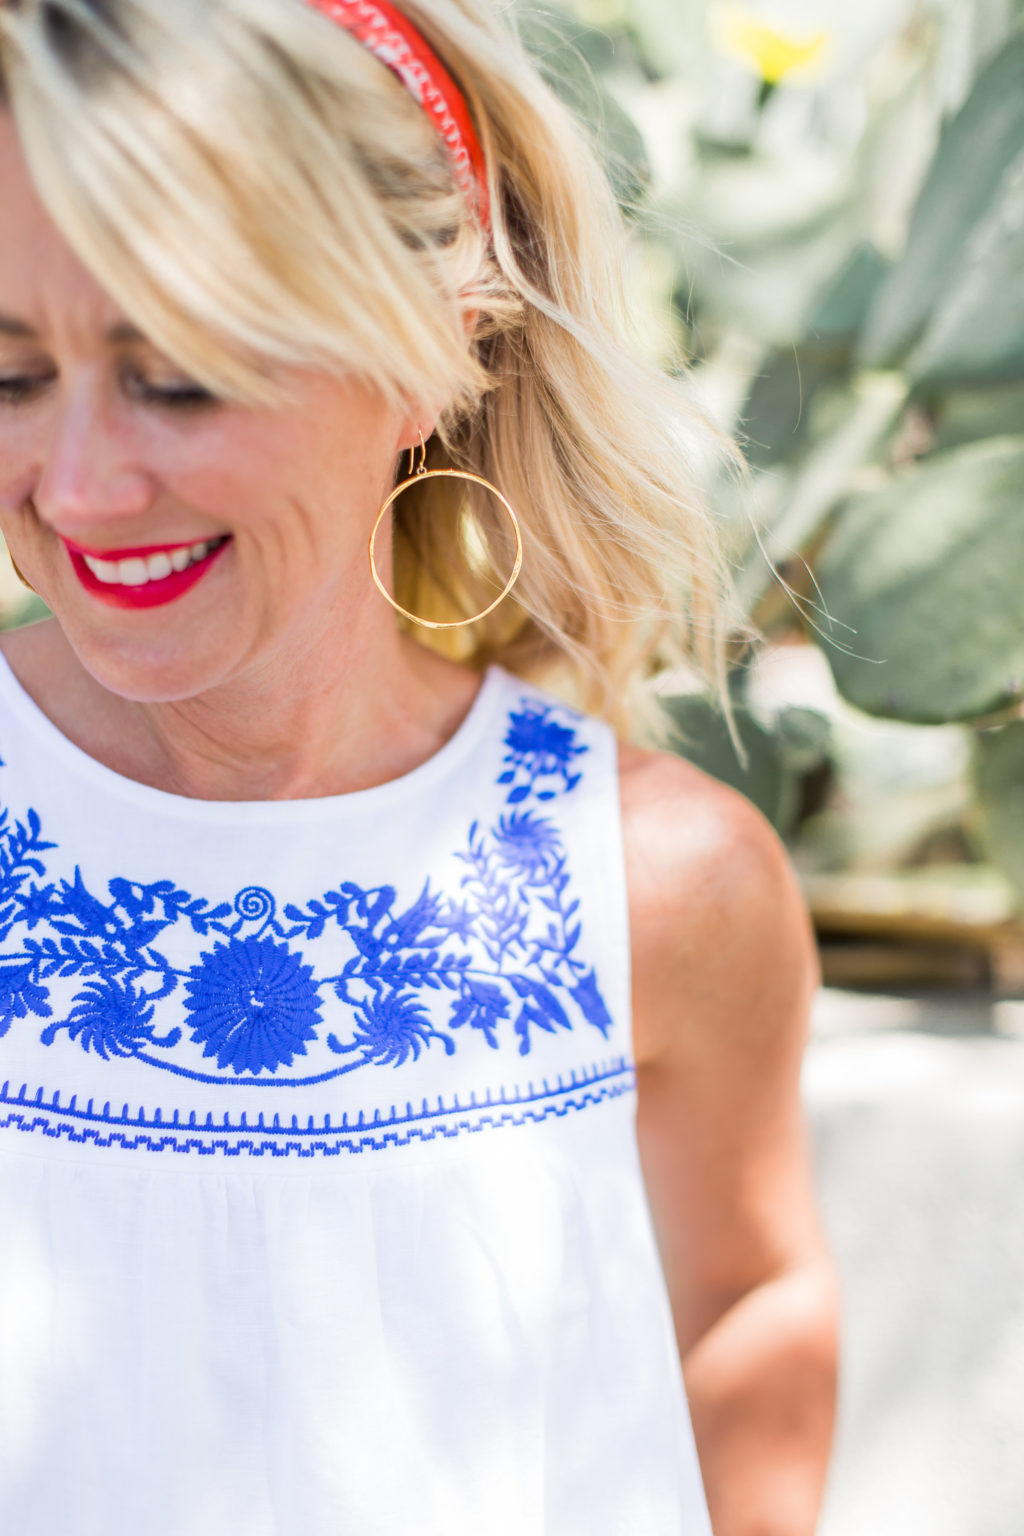 j.crew factory embroidered dress fourth of july